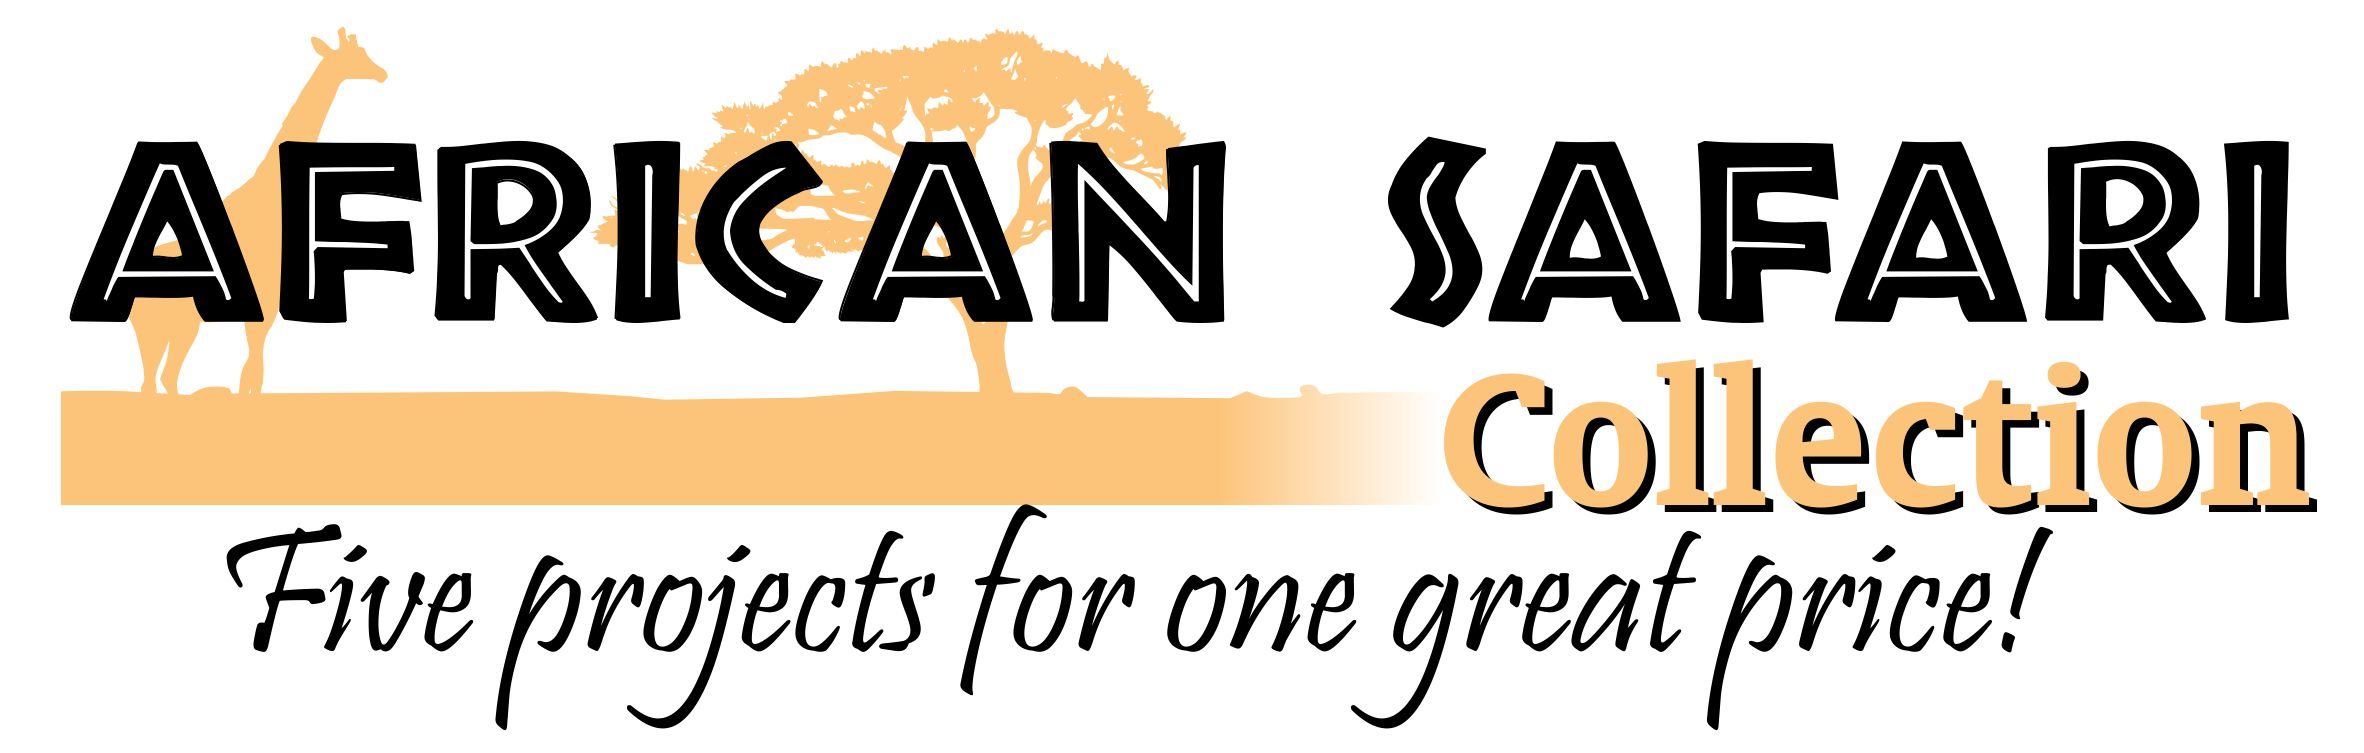 Collection Graphics - African Safari - Long